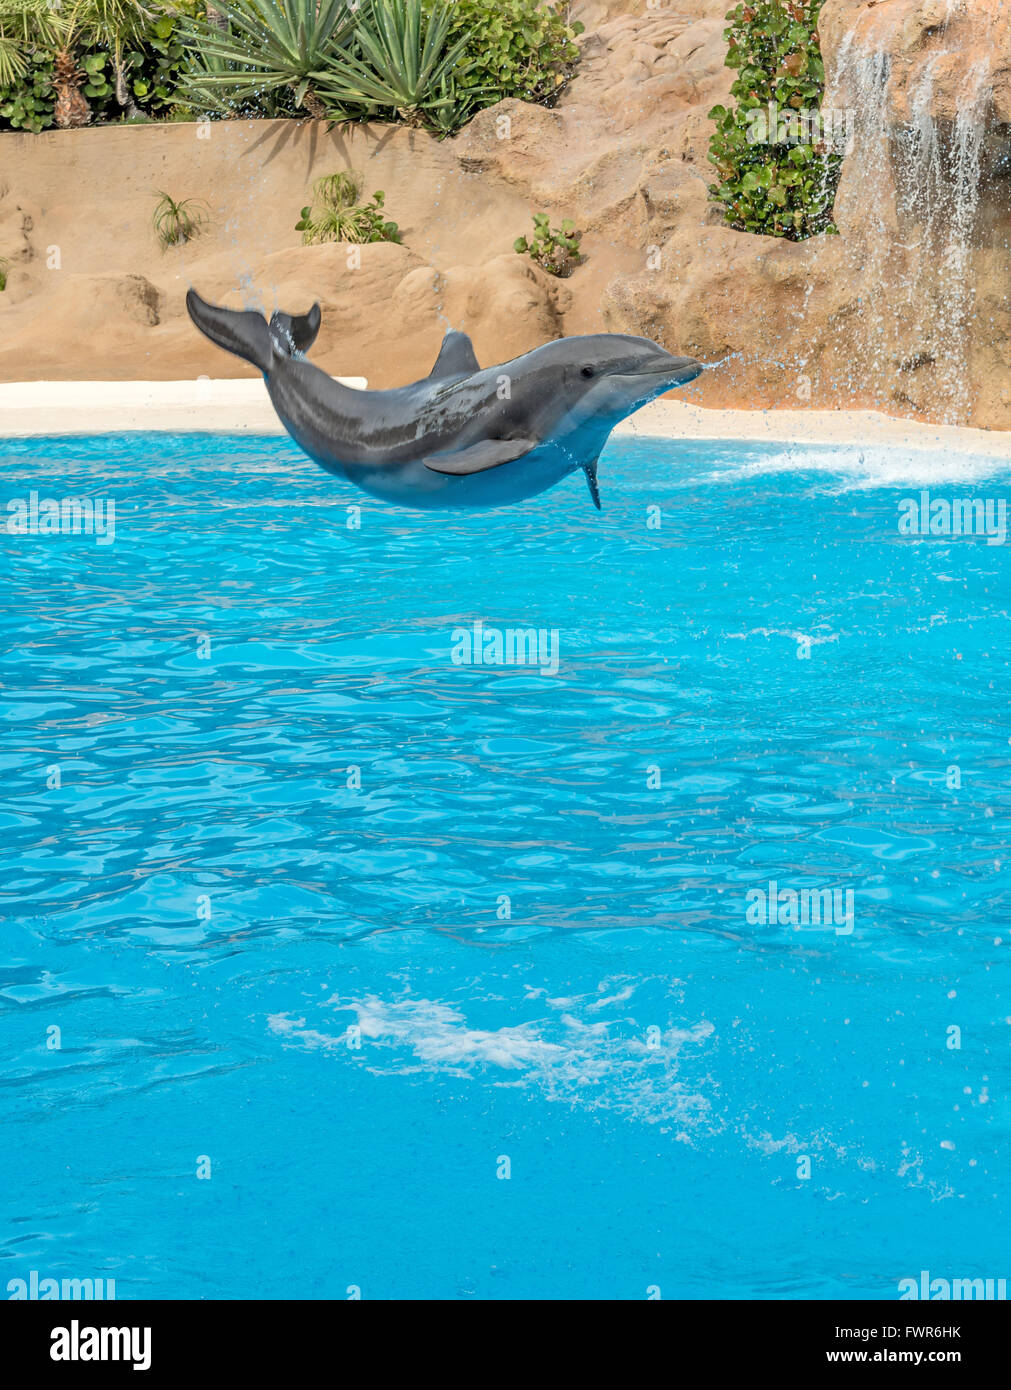 DOLPHIN PERFORMING AT LORO PARQUE, PUERTO DE LA CRUZ, TENERIFE - Stock Image